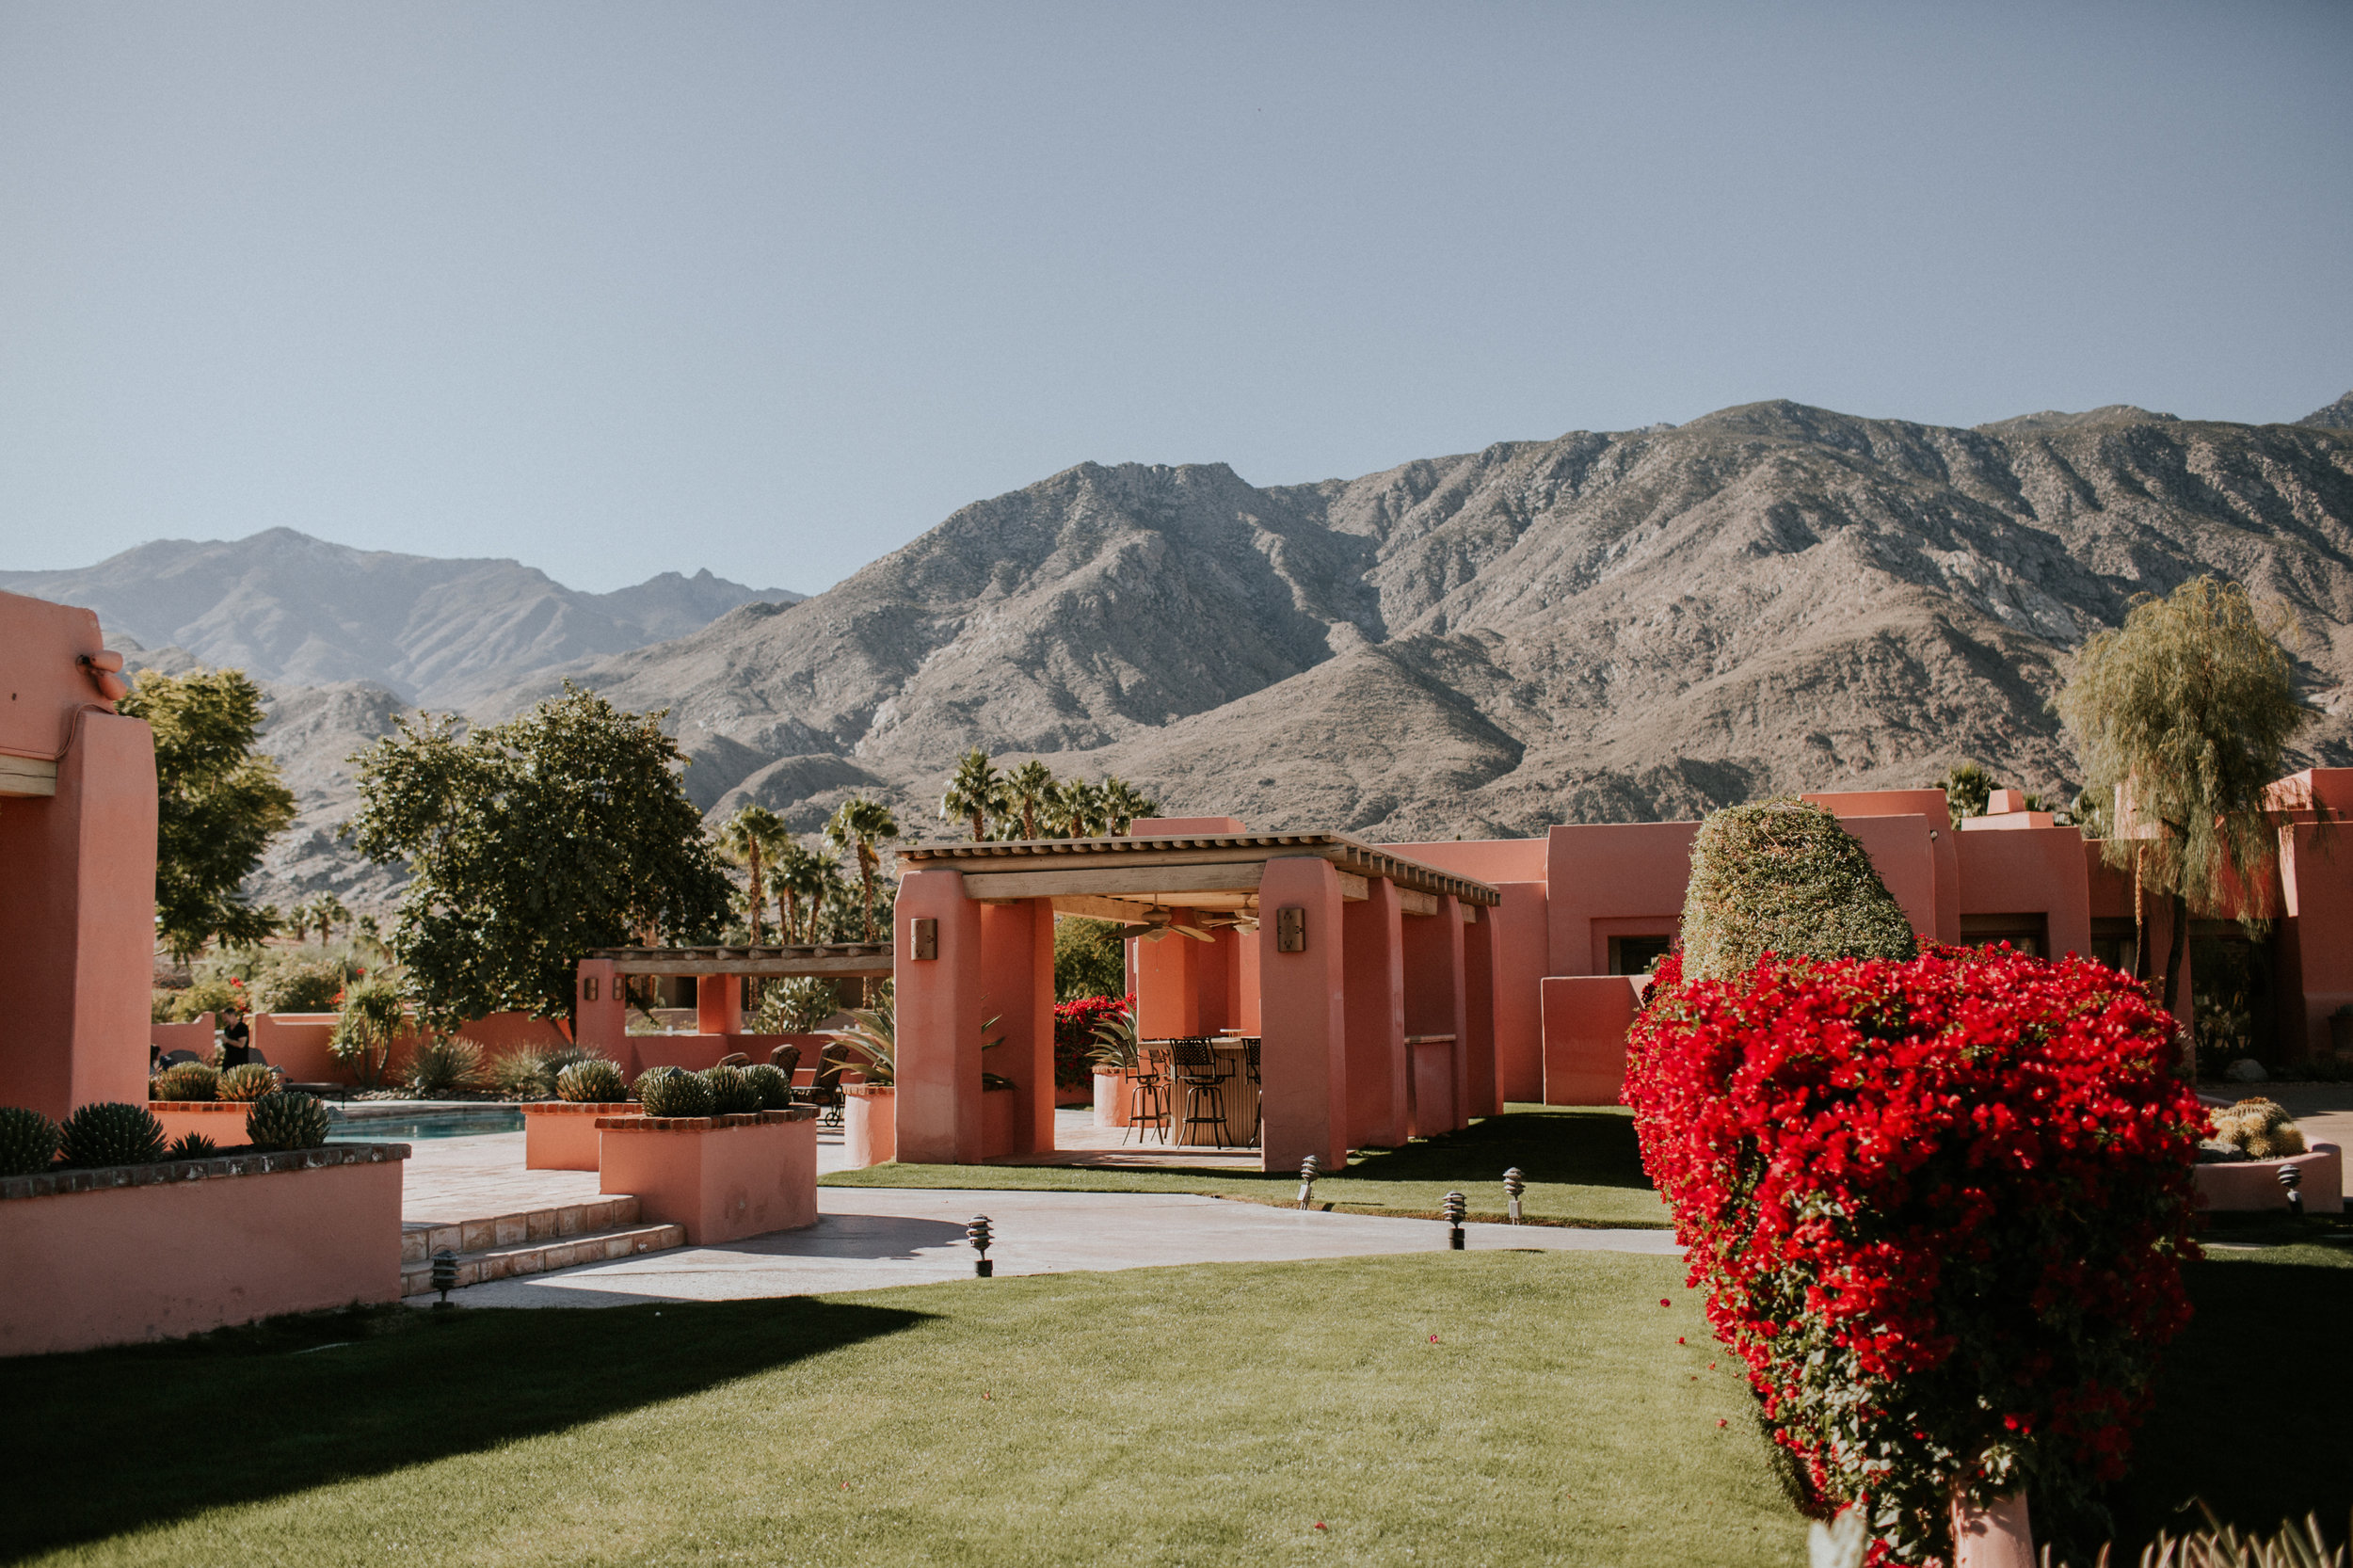 jamilaree-pondestate-palmsprings-wedding-99.jpg